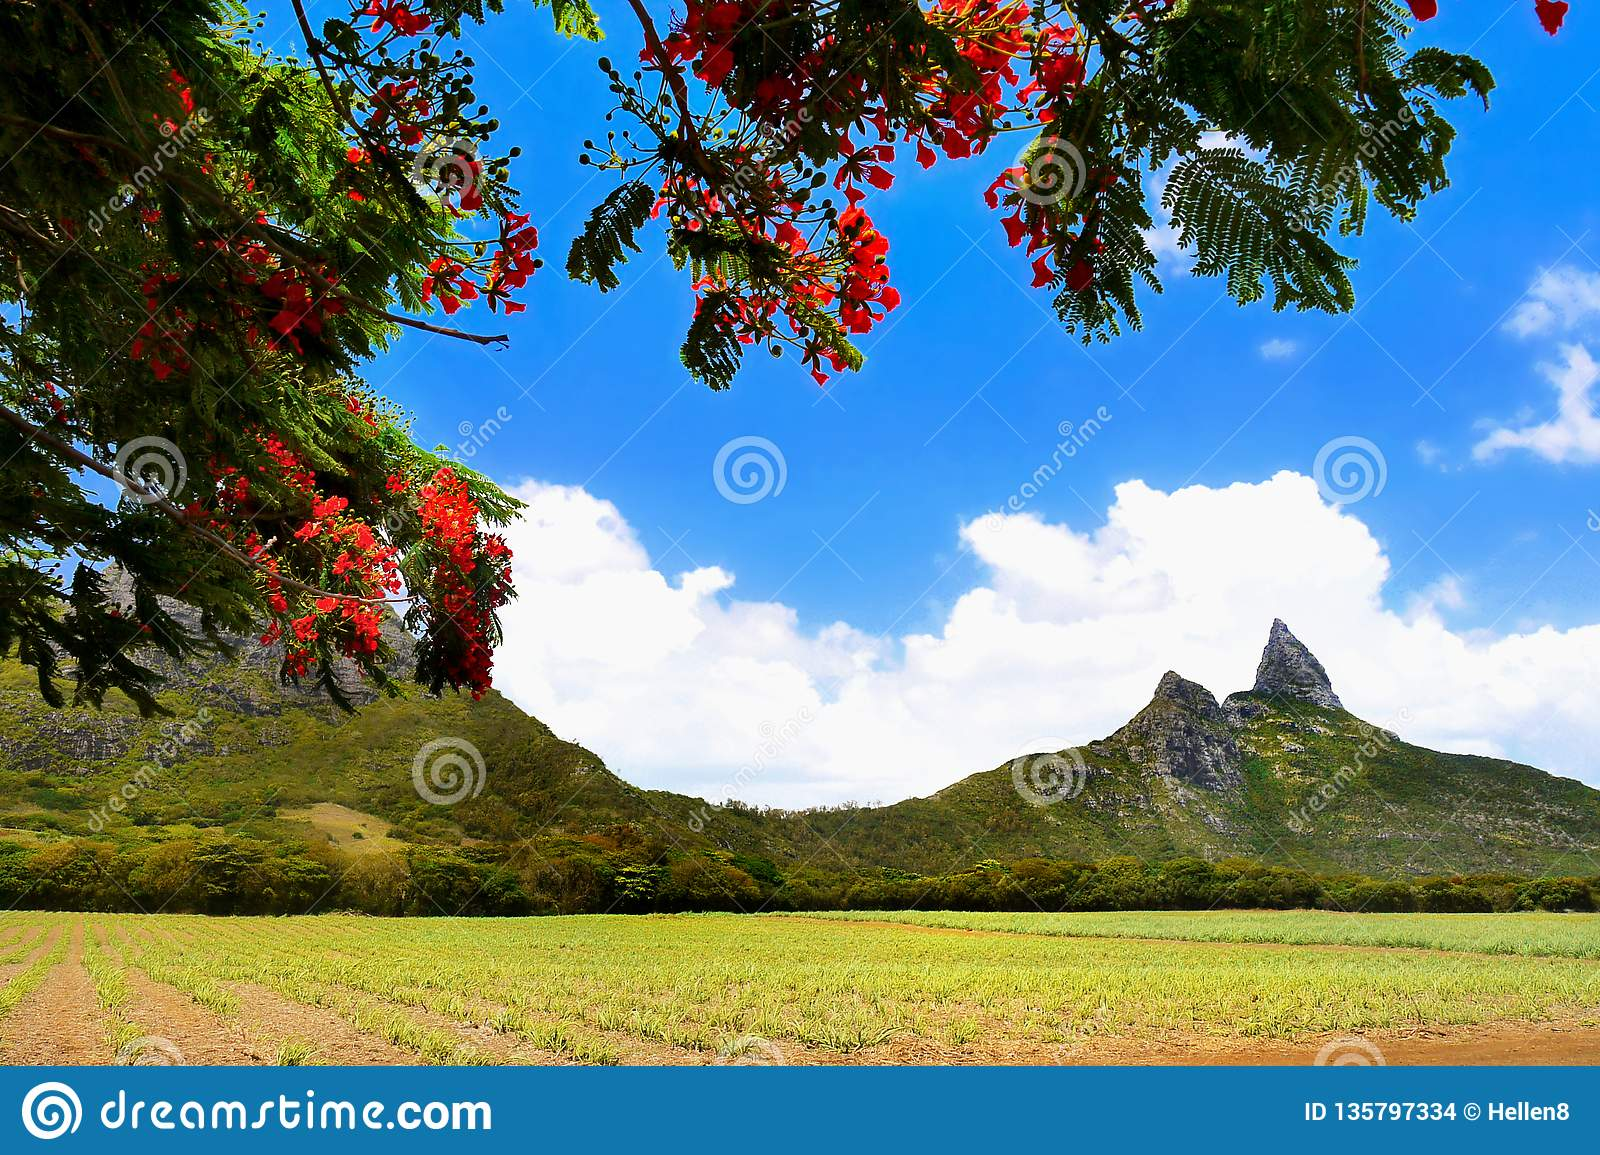 Flamboyant Tree and Mountains,Mauritius Island